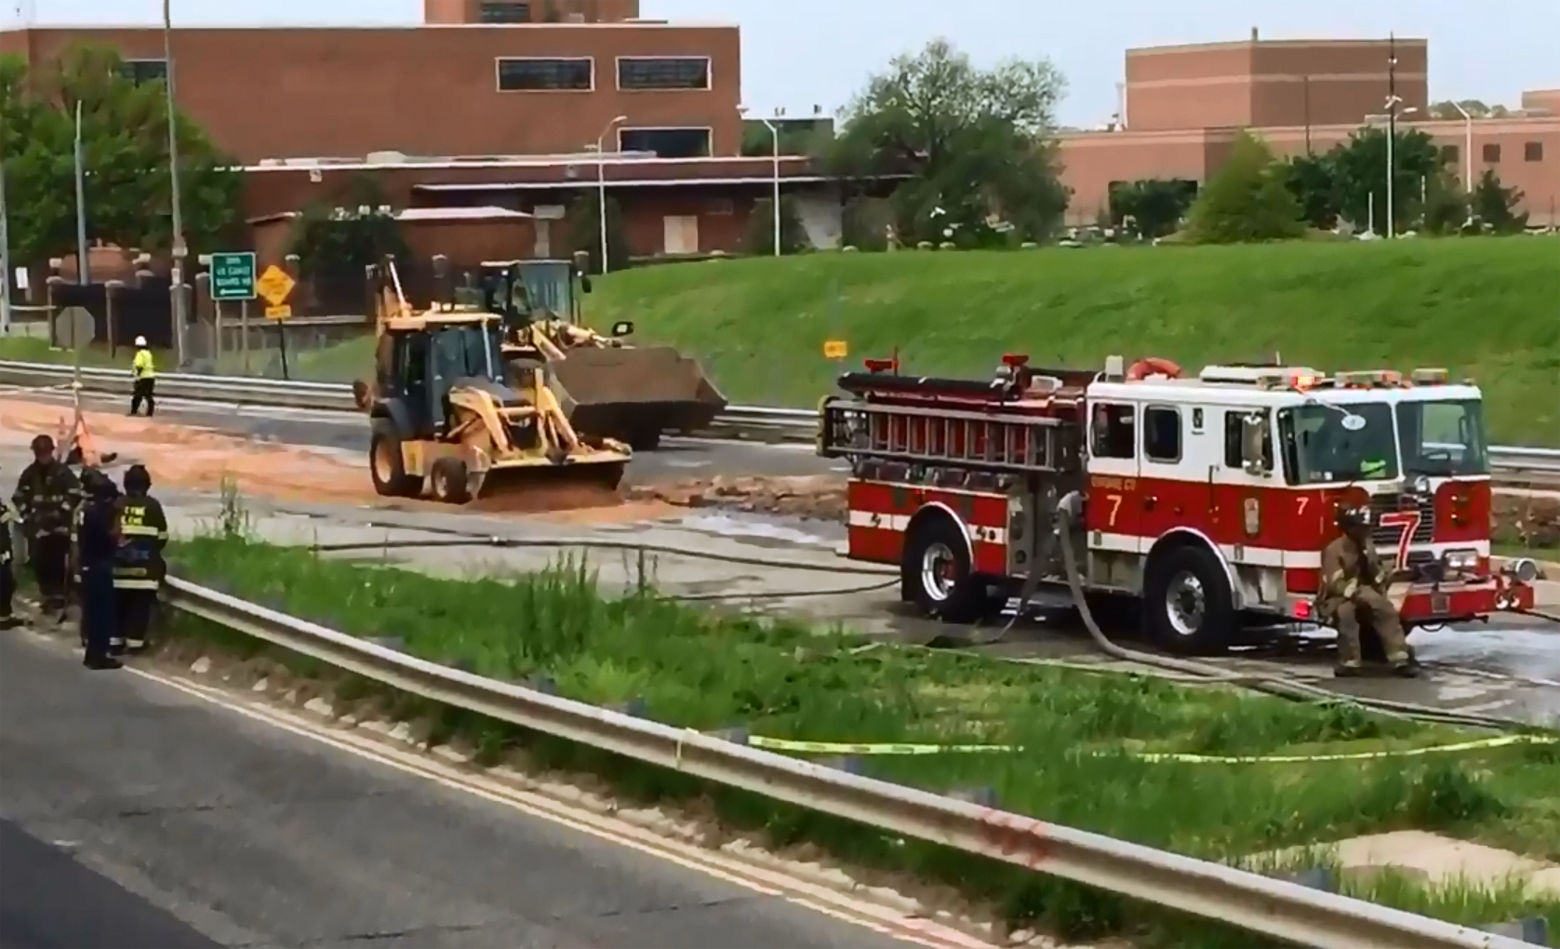 Crews hauled in sand to stop the spread of the spilled fuel. (Courtesy D.C. Fire and EMS)